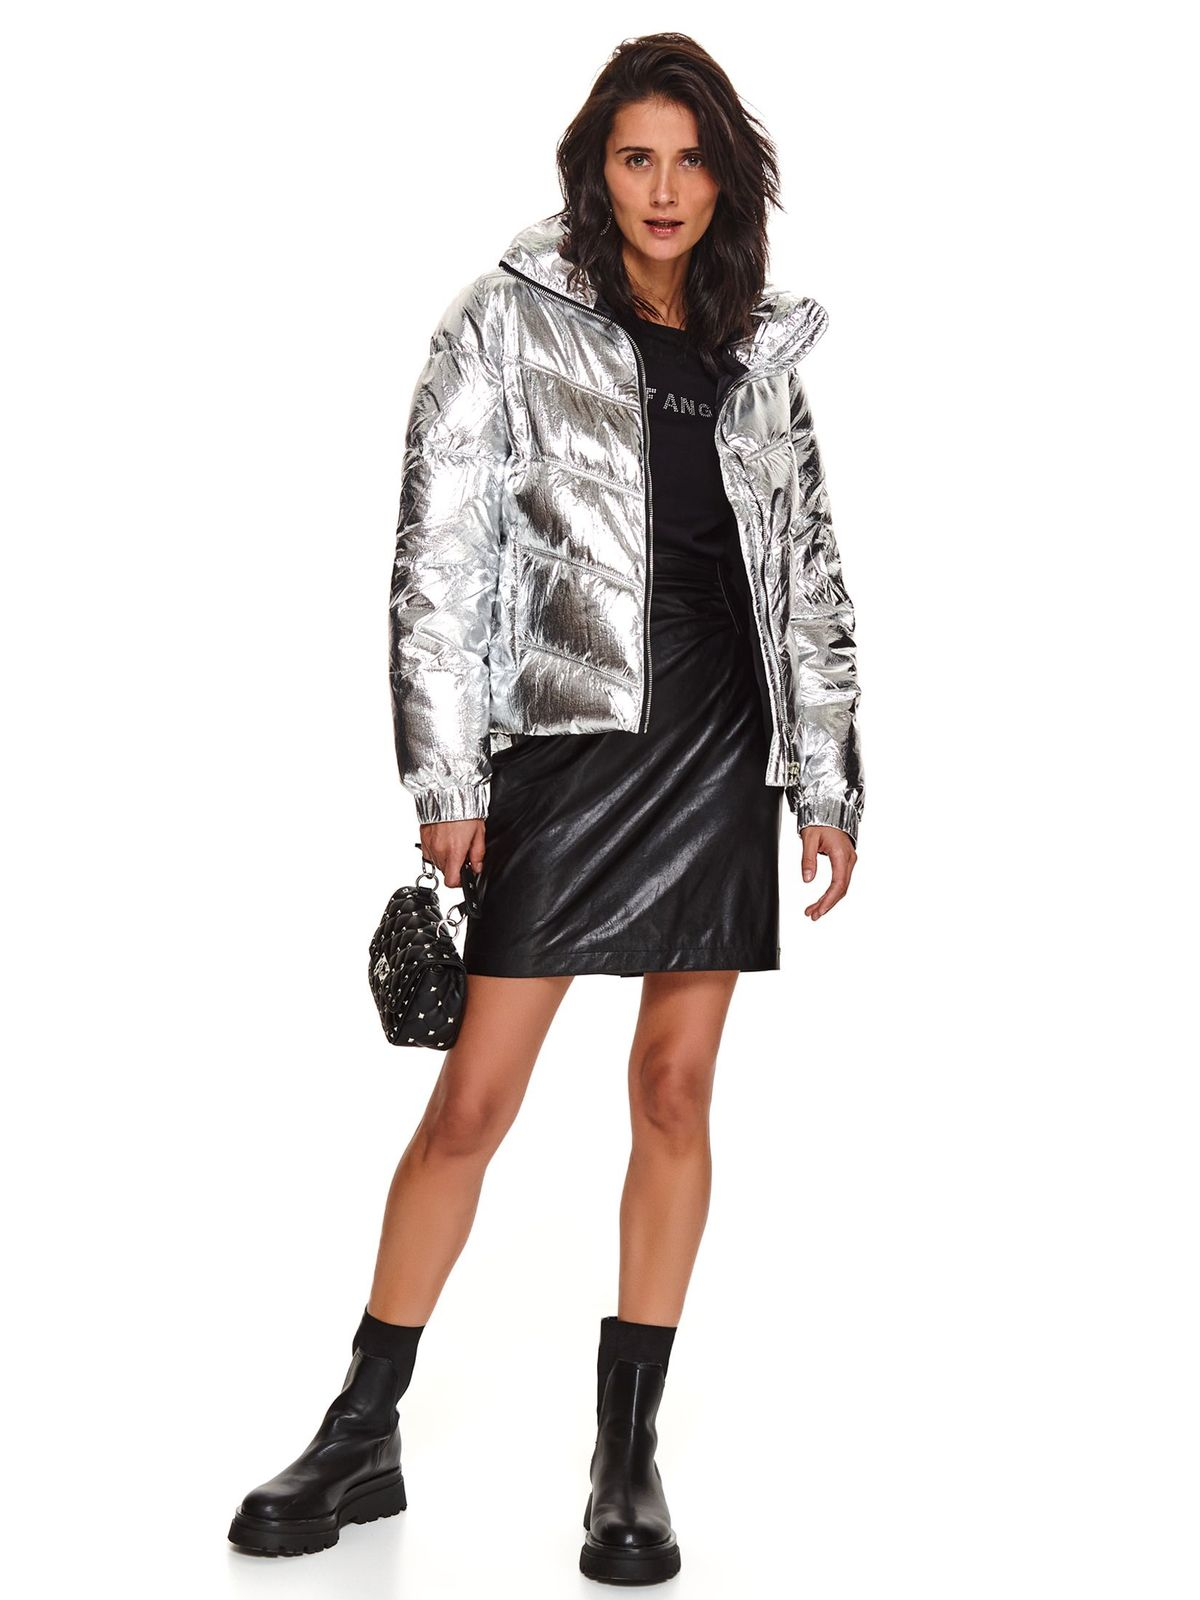 Black skirt short cut high waisted straight faux leather